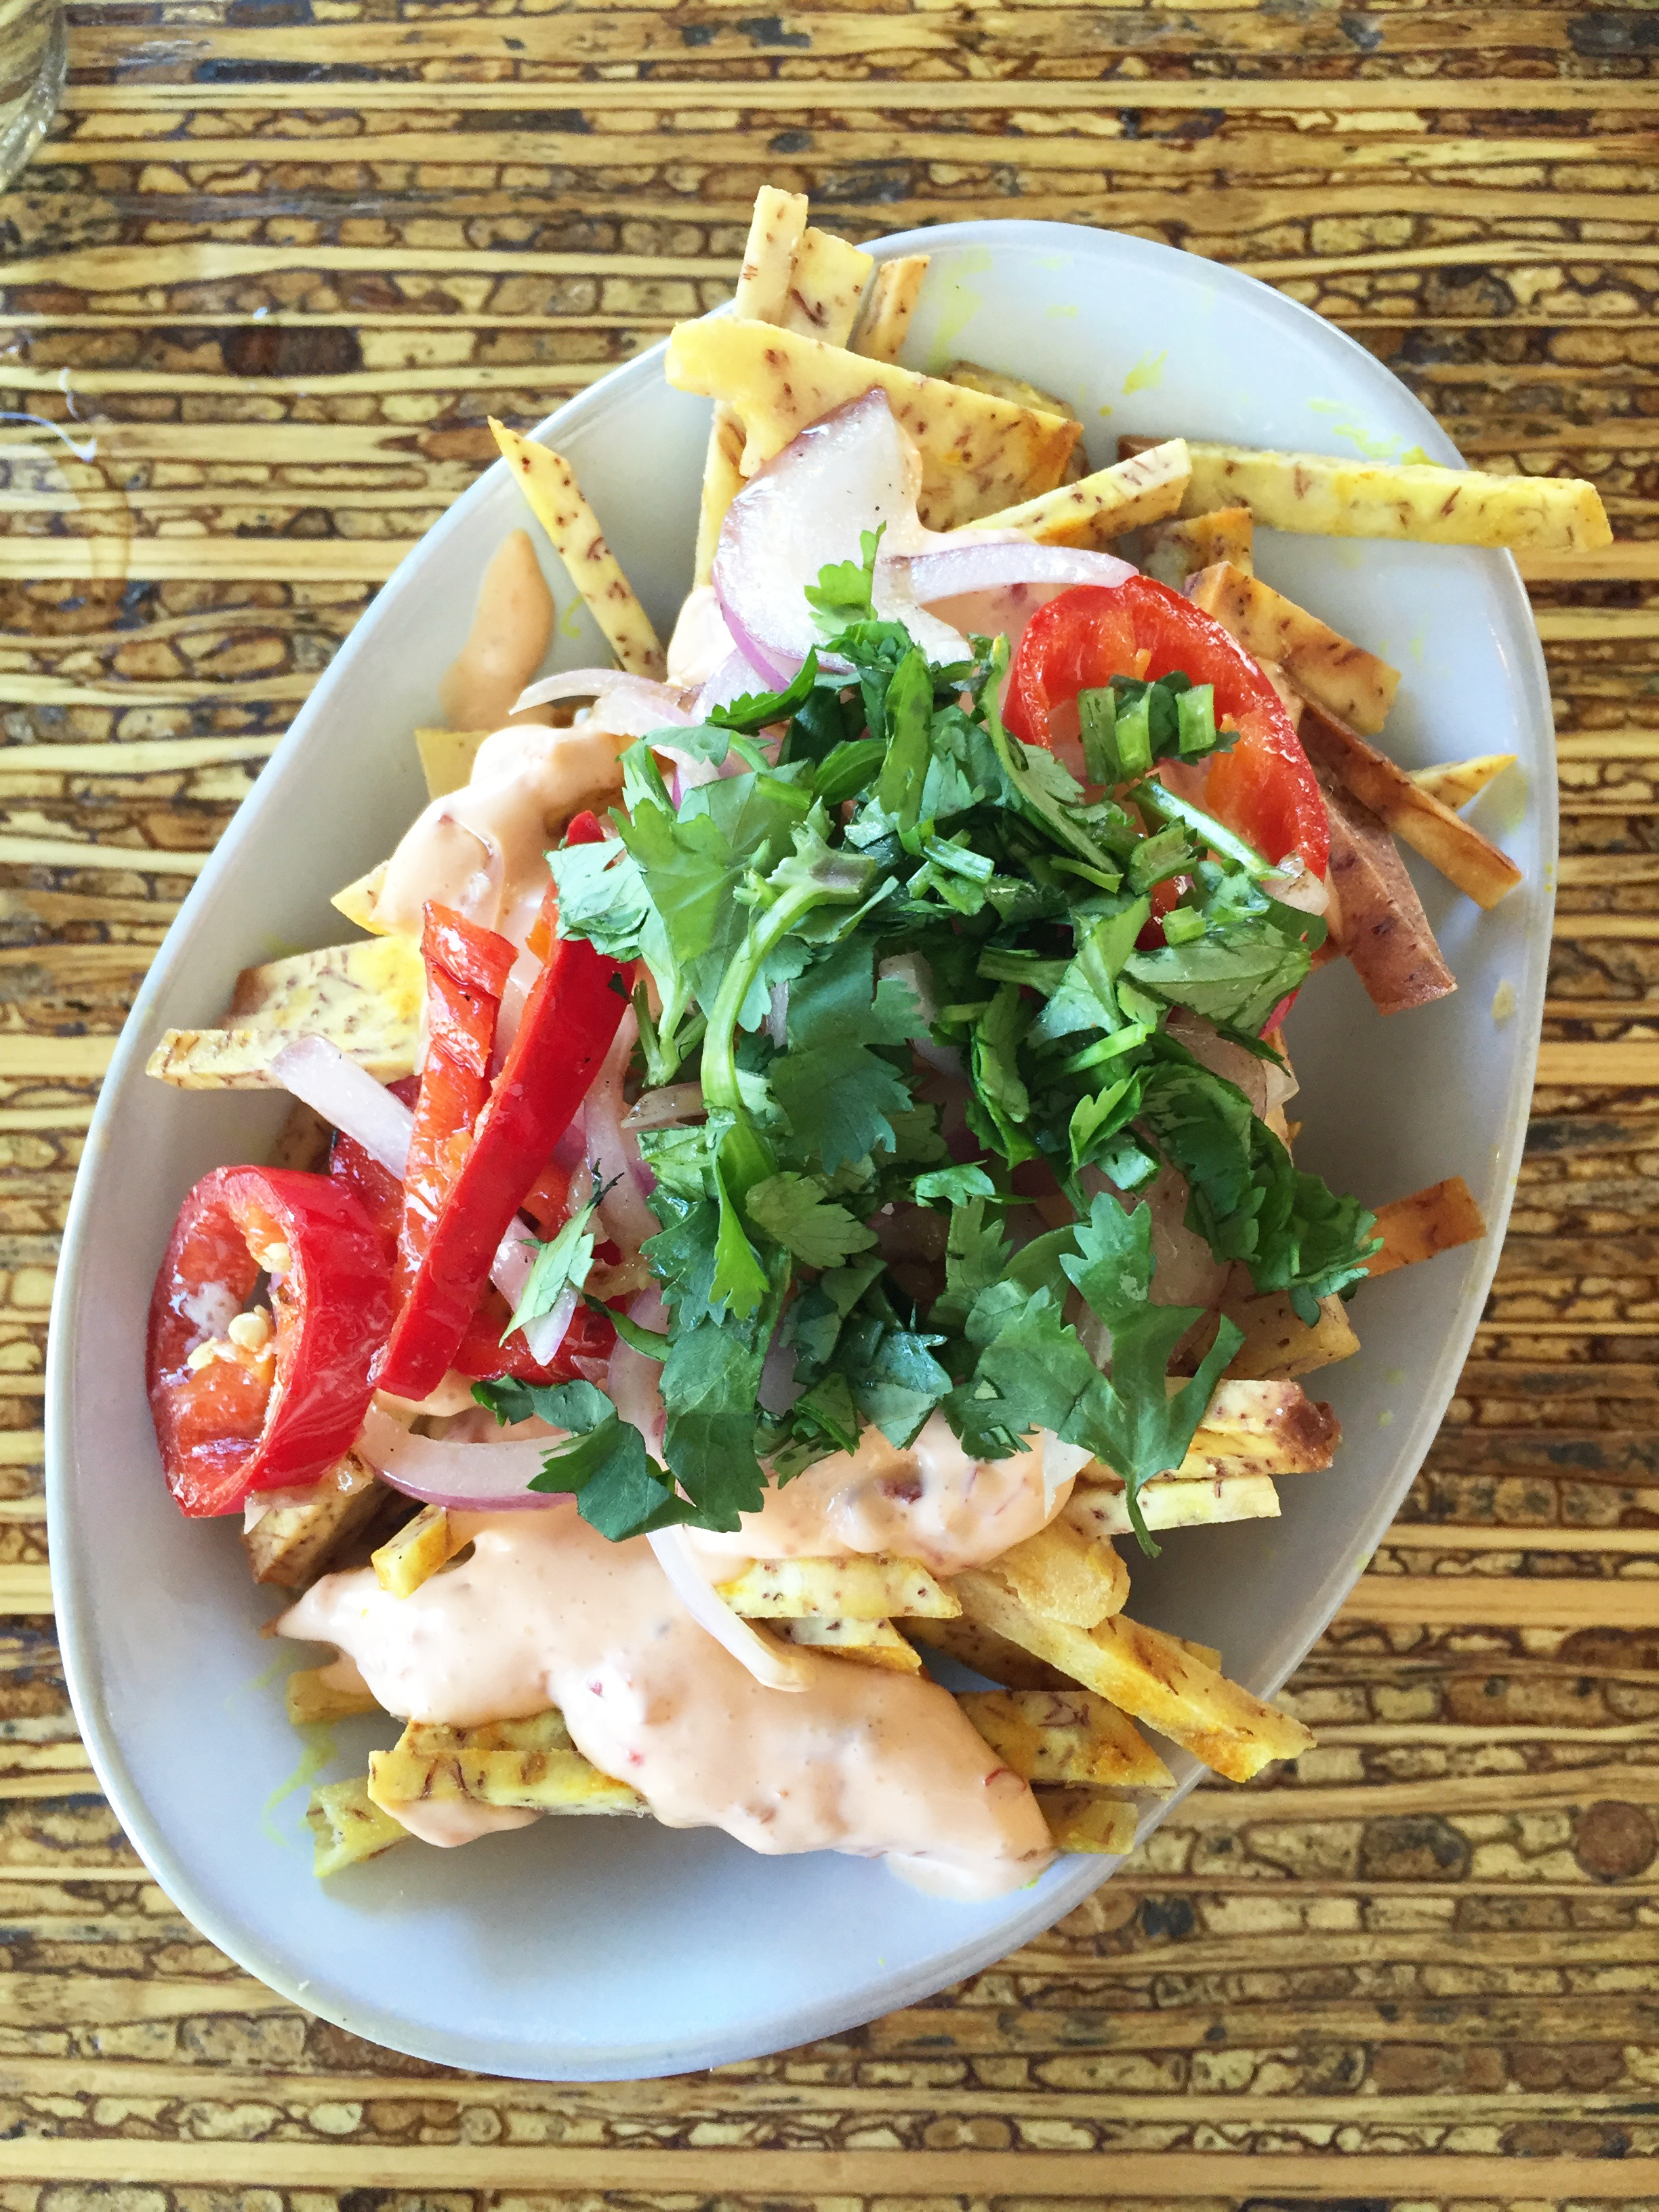 Animal Fries - Taro fries with grilled onion, chilies, aioli, cilantro and shallots.